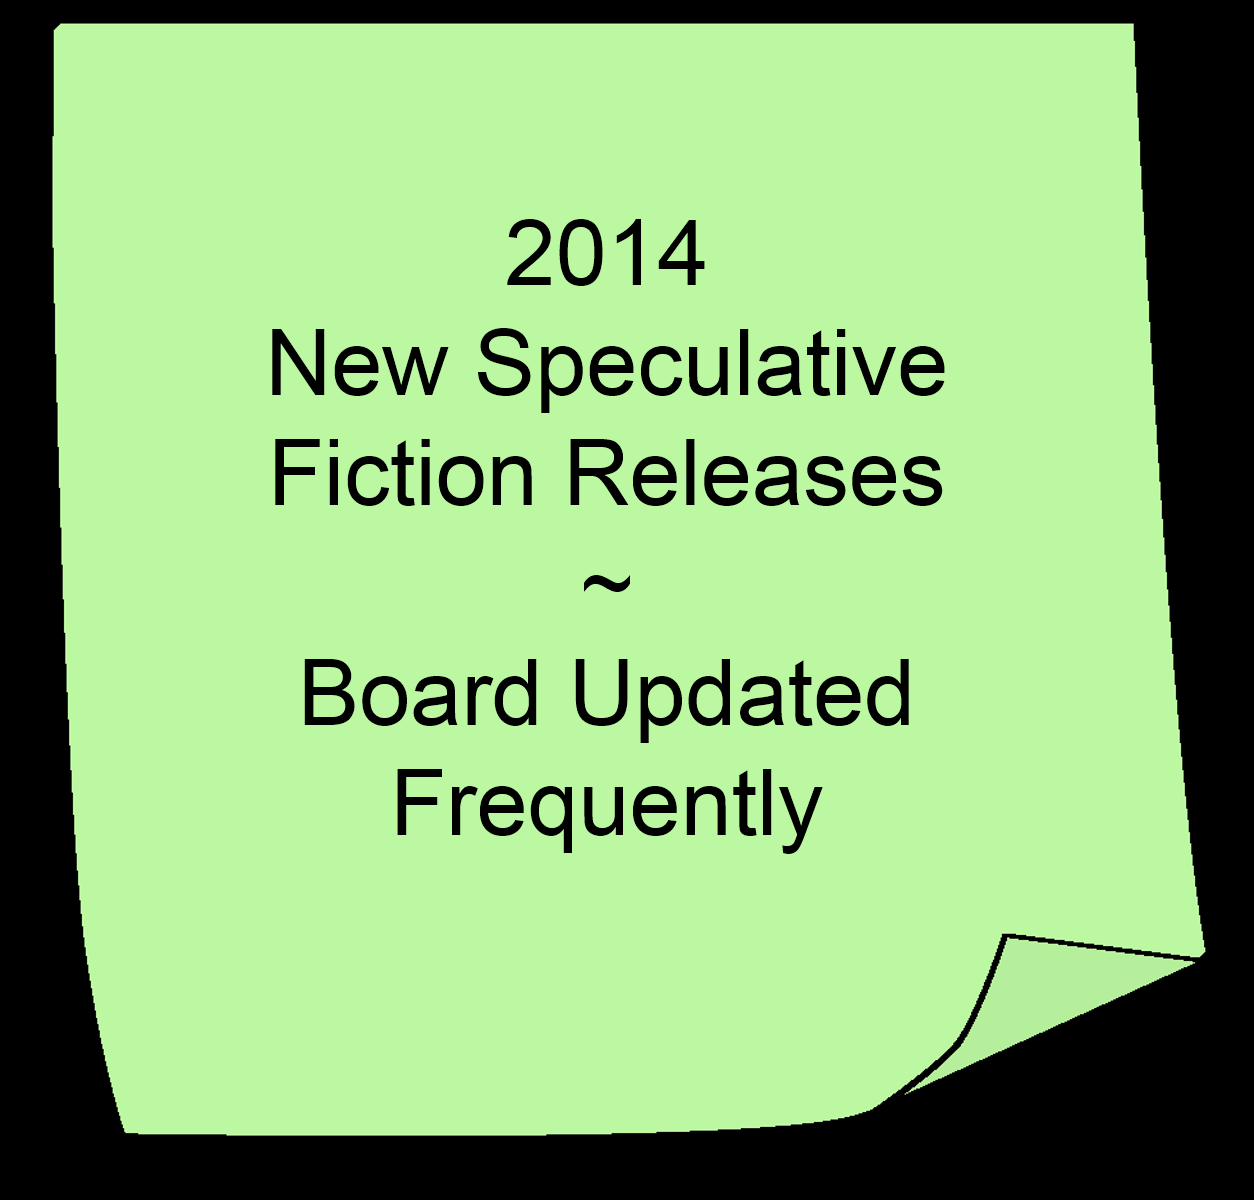 2014 New Speculative Fiction Releases Board